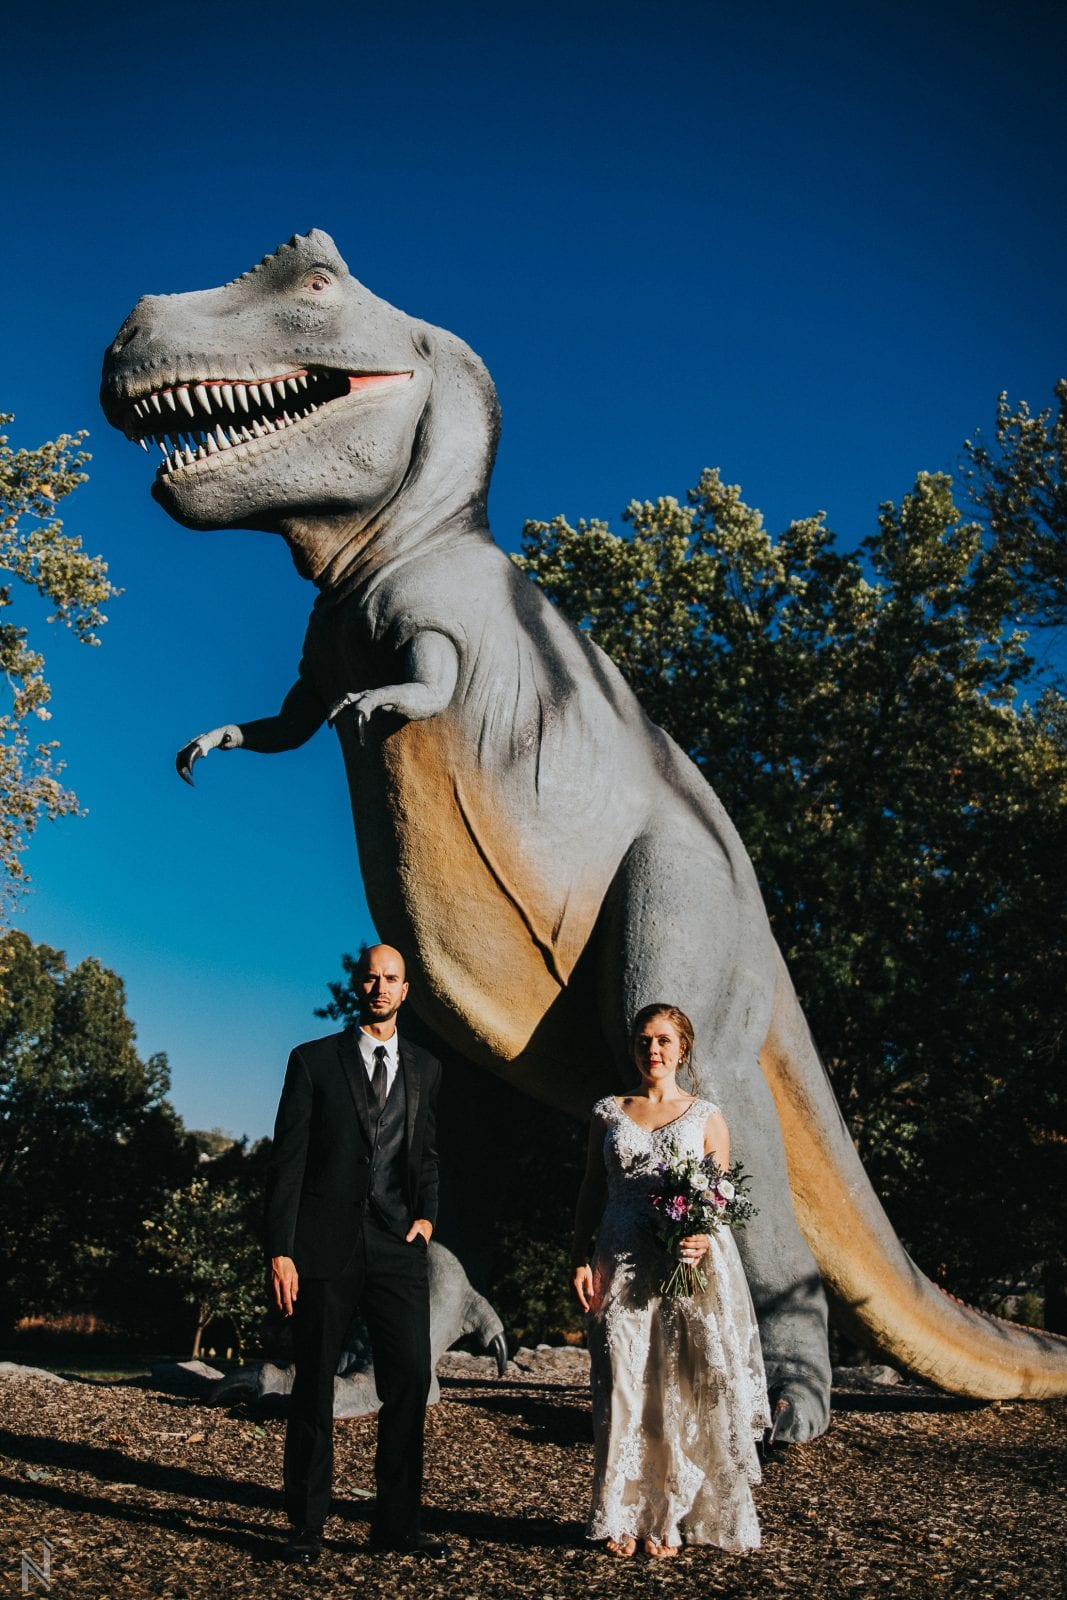 Bride and Groom picture in front of T Rex statue outside of the Science Center in St. Louis, MO